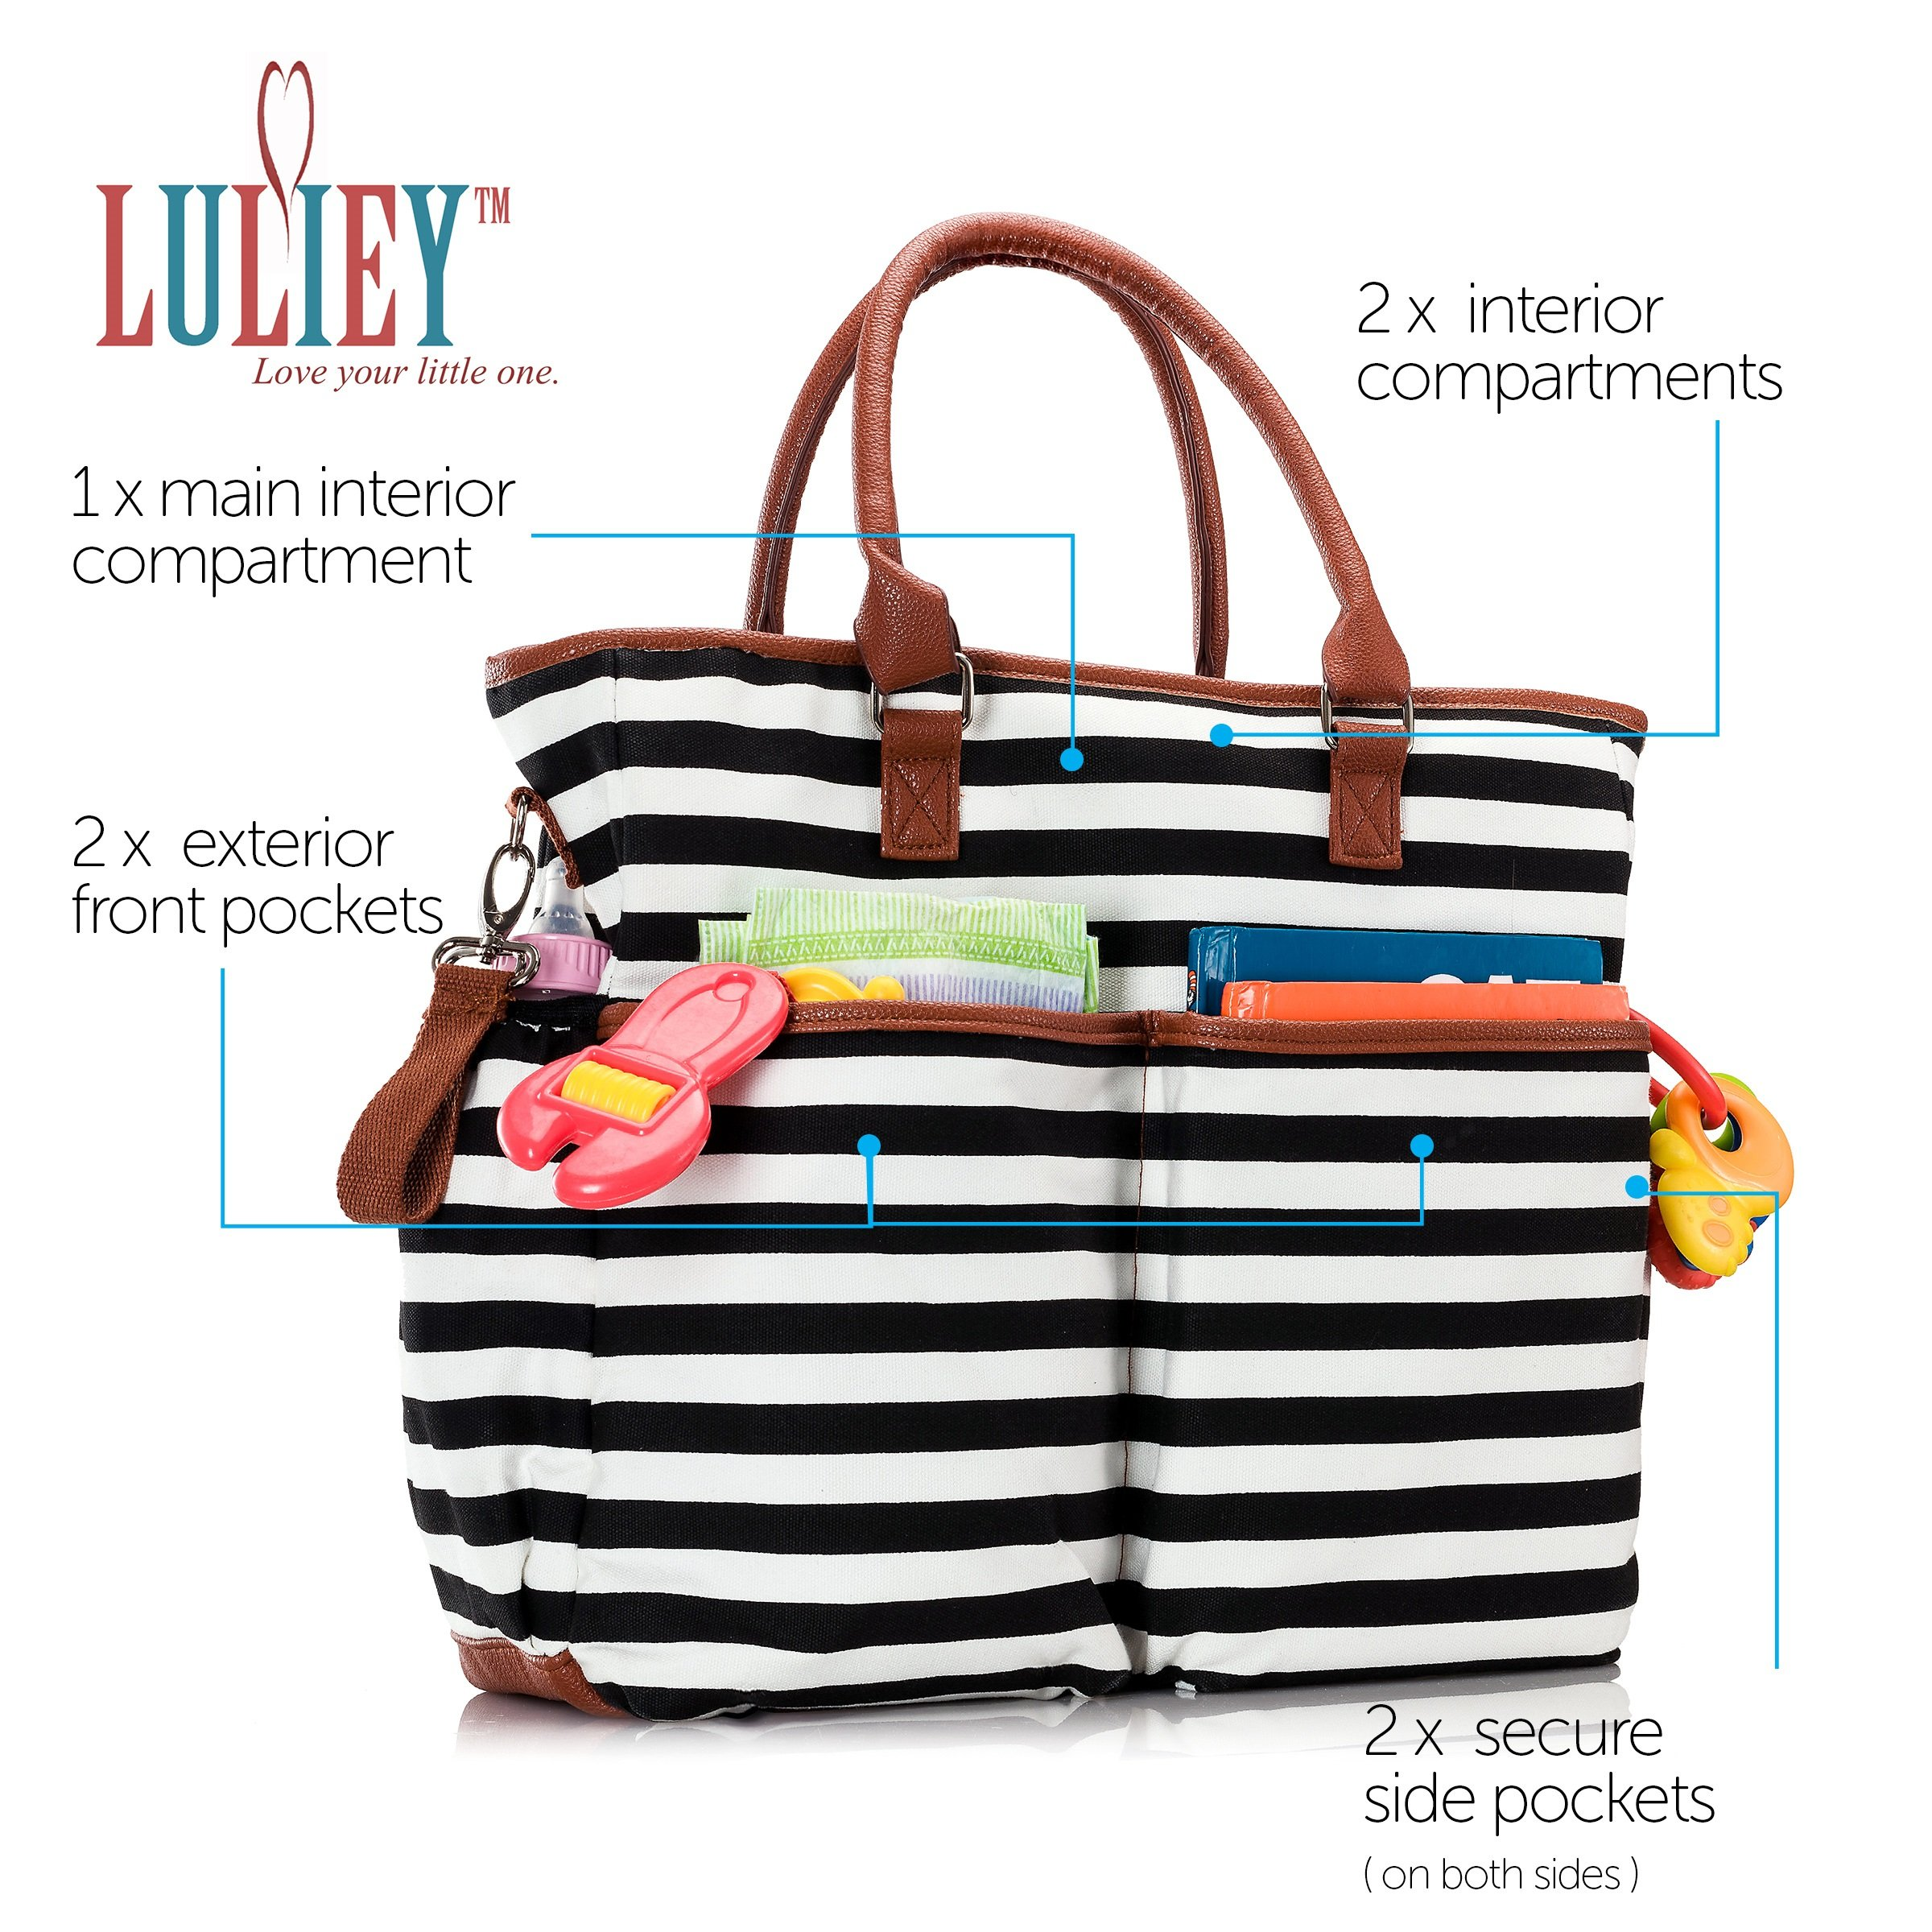 Premium Baby Diaper Tote Bag + Matching Changing Pad and Stroller Strap – 14 Spacious Pockets – Durable Canvas Material – Black and White Stripes with Tan Leather Trim – Lightweight - 14'' x 5'' x 15'' by Luliey (Image #3)